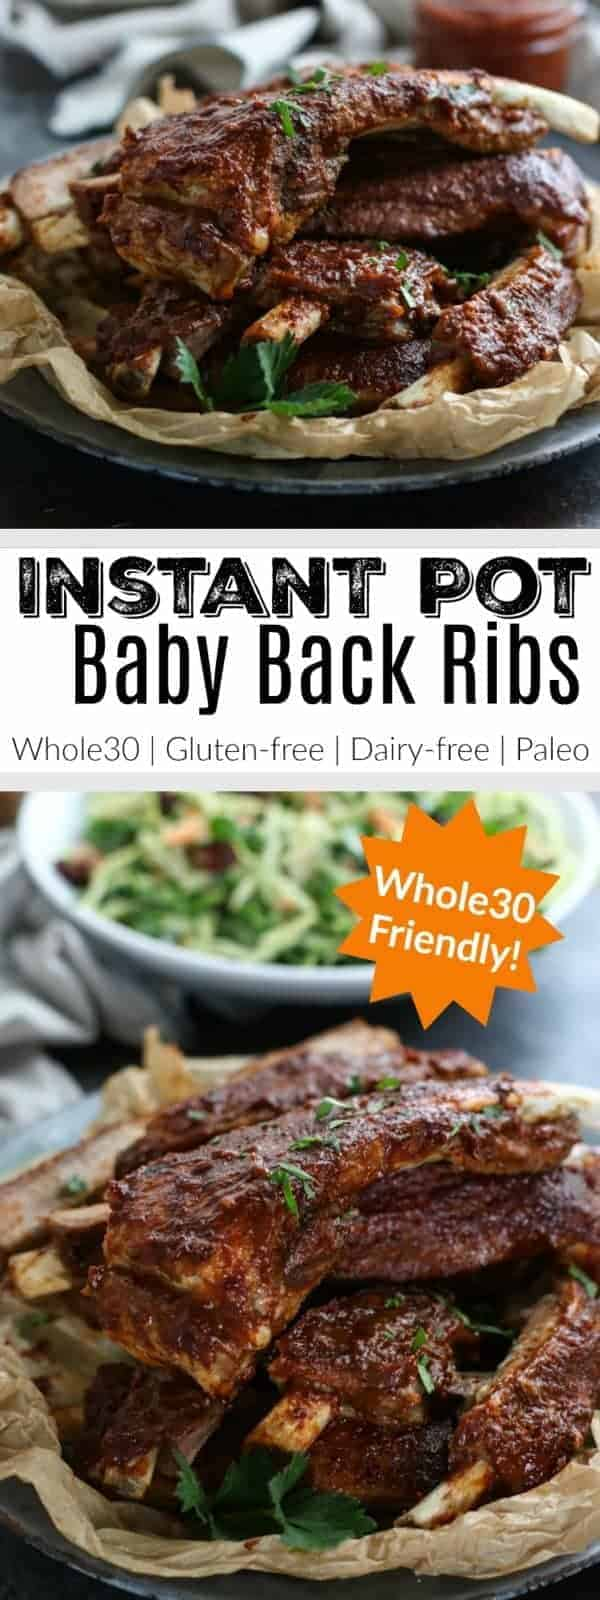 Craving BBQ ribs but don't have all day to tend the grill? No worries, these Instant Pot Baby Back Ribs are ready in under an hour! | The Real Food Dietitians | https://therealfoodrds.com/instant-pot-baby-back-ribs/